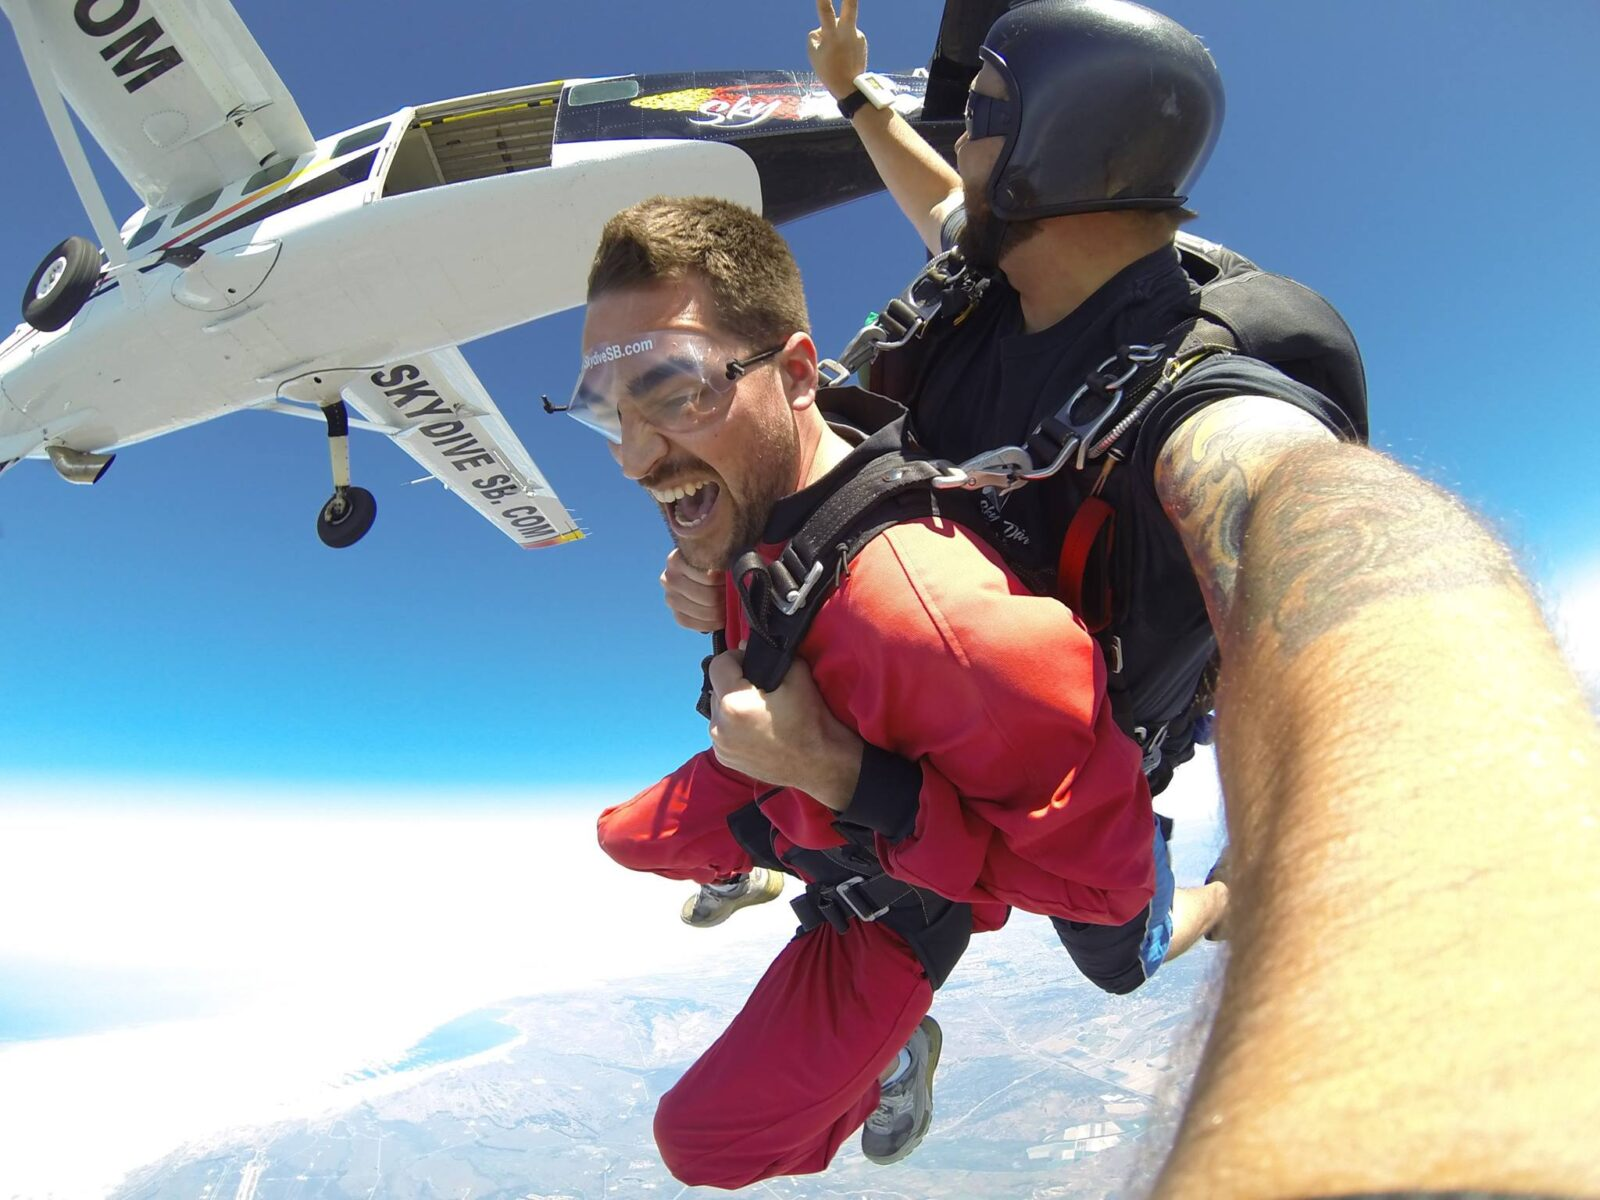 A Holiday Tandem Skydive At Skydive Santa Barbara